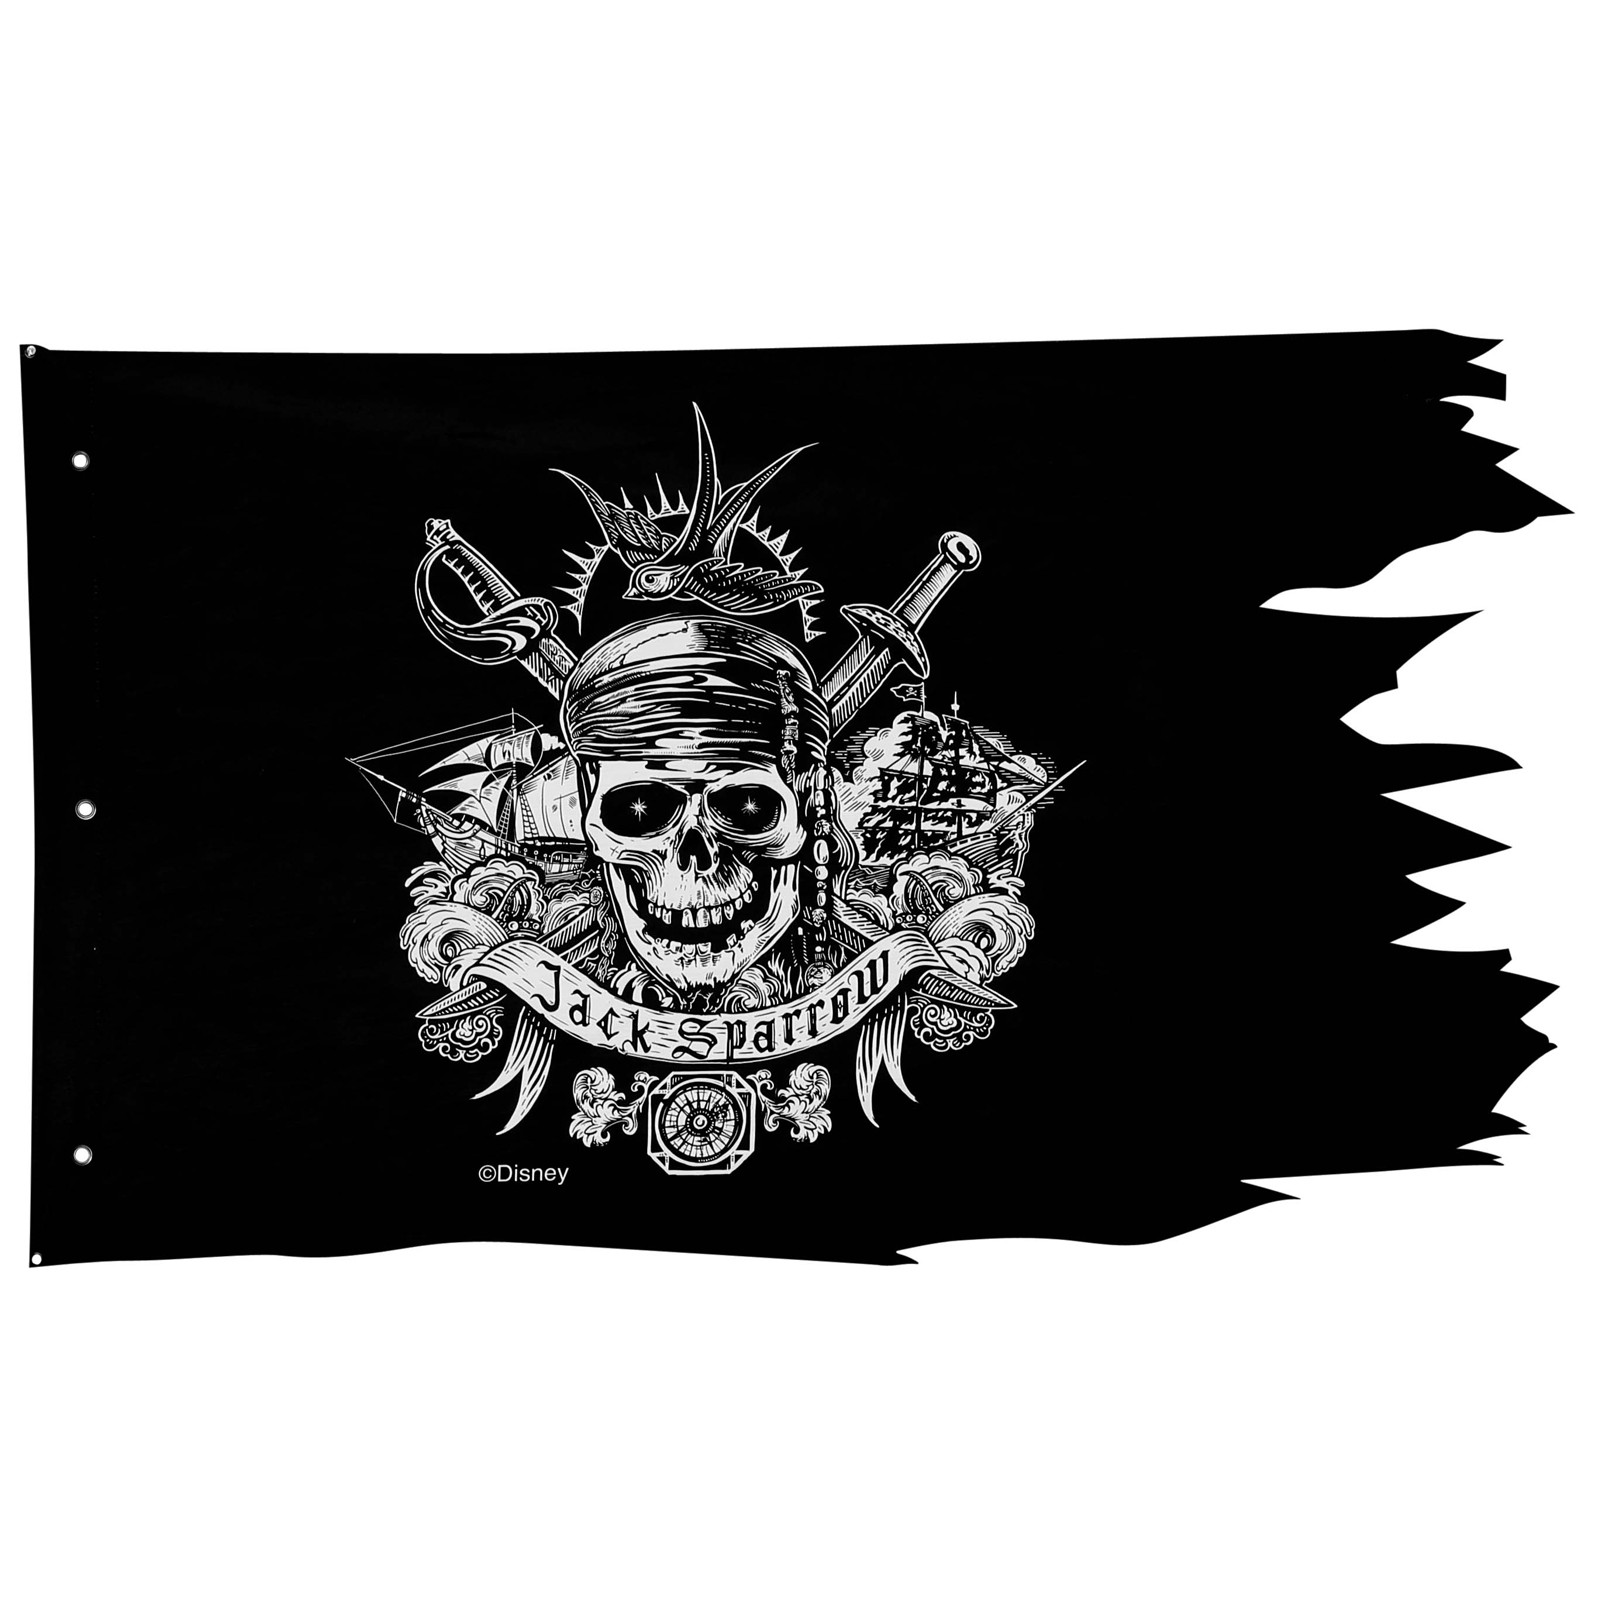 "Pirates of the Caribbean Dead Men Tell No Tales Pirate Flag Wall Decor (50"" x 30"")"